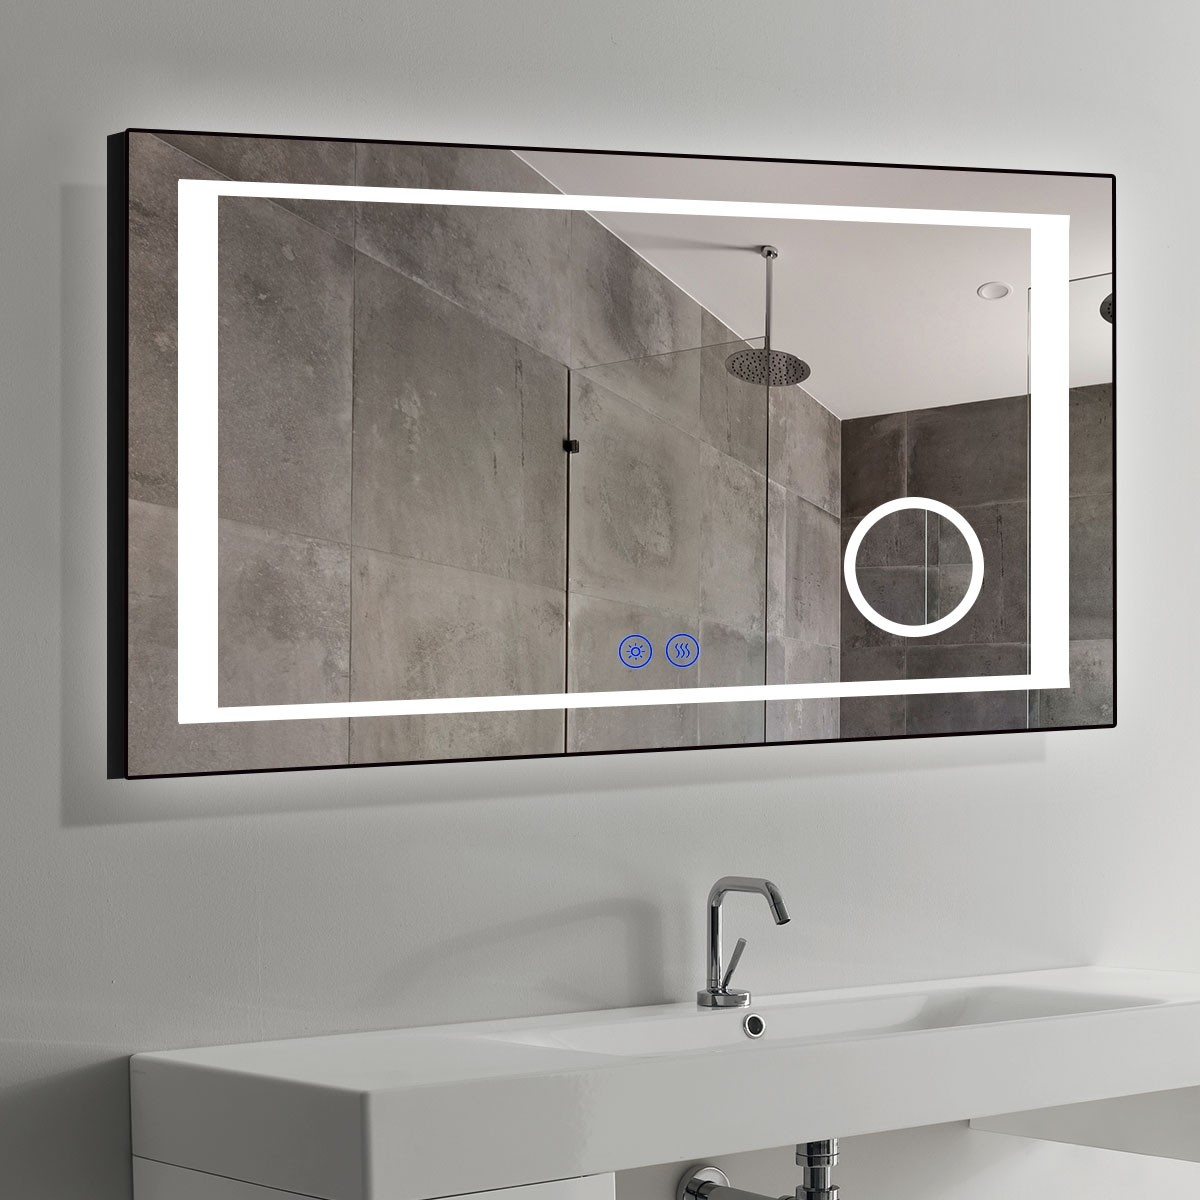 DECORAPORT 60 x 36 Inch LED Bathroom Mirror/Dress Mirror with Touch Button, Magnifier, Anti Fog, Dimmable, Vertical & Horizontal Mount (KT03-6036)